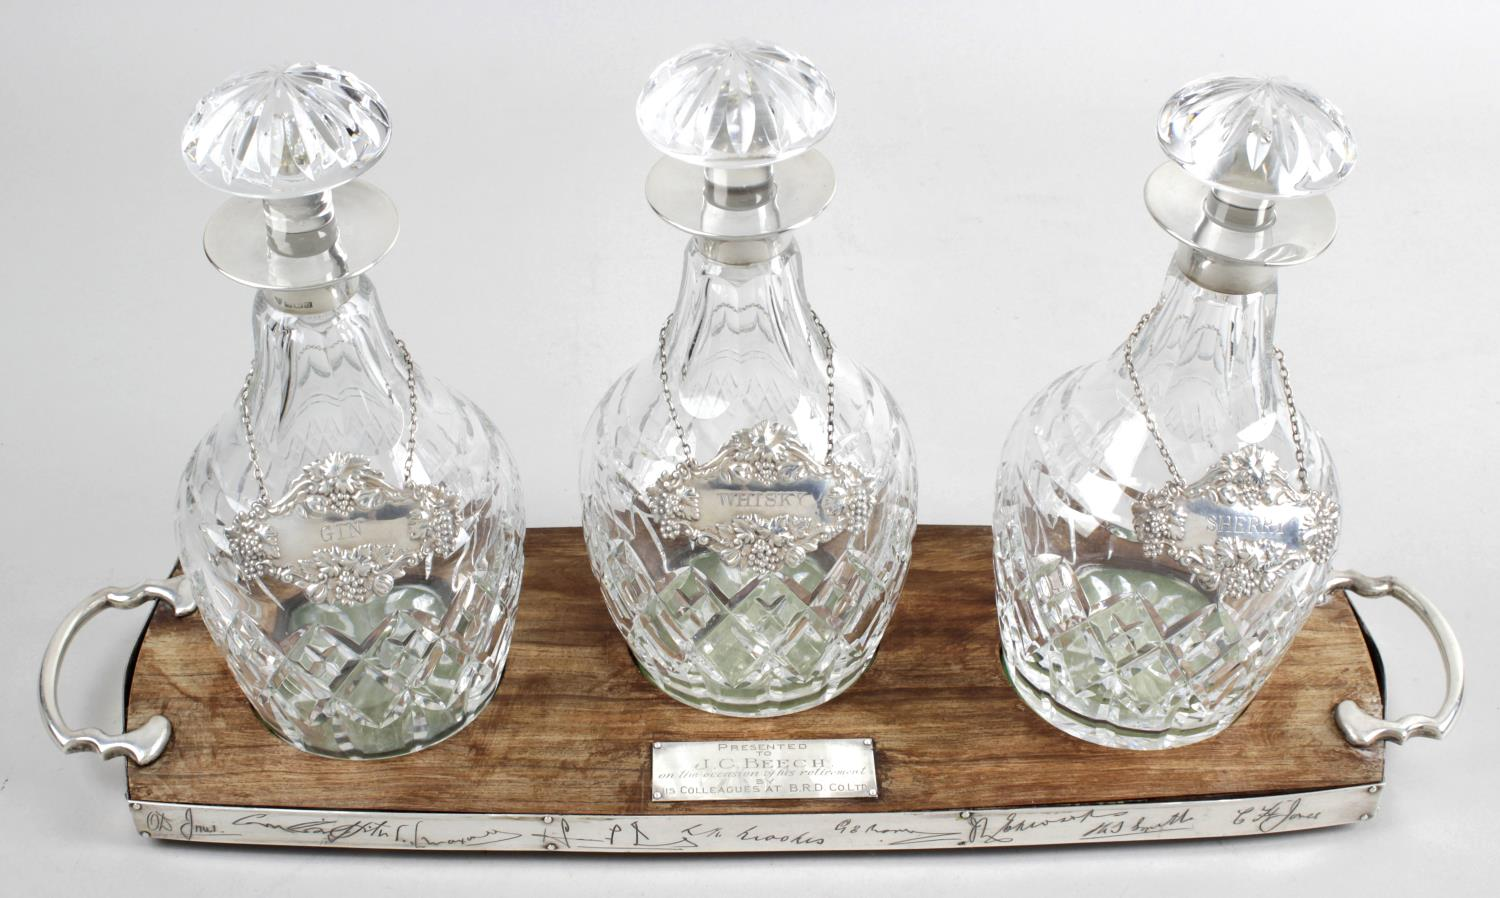 Lot 166 - A set of three mid-twentieth century silver mounted glass decanters,